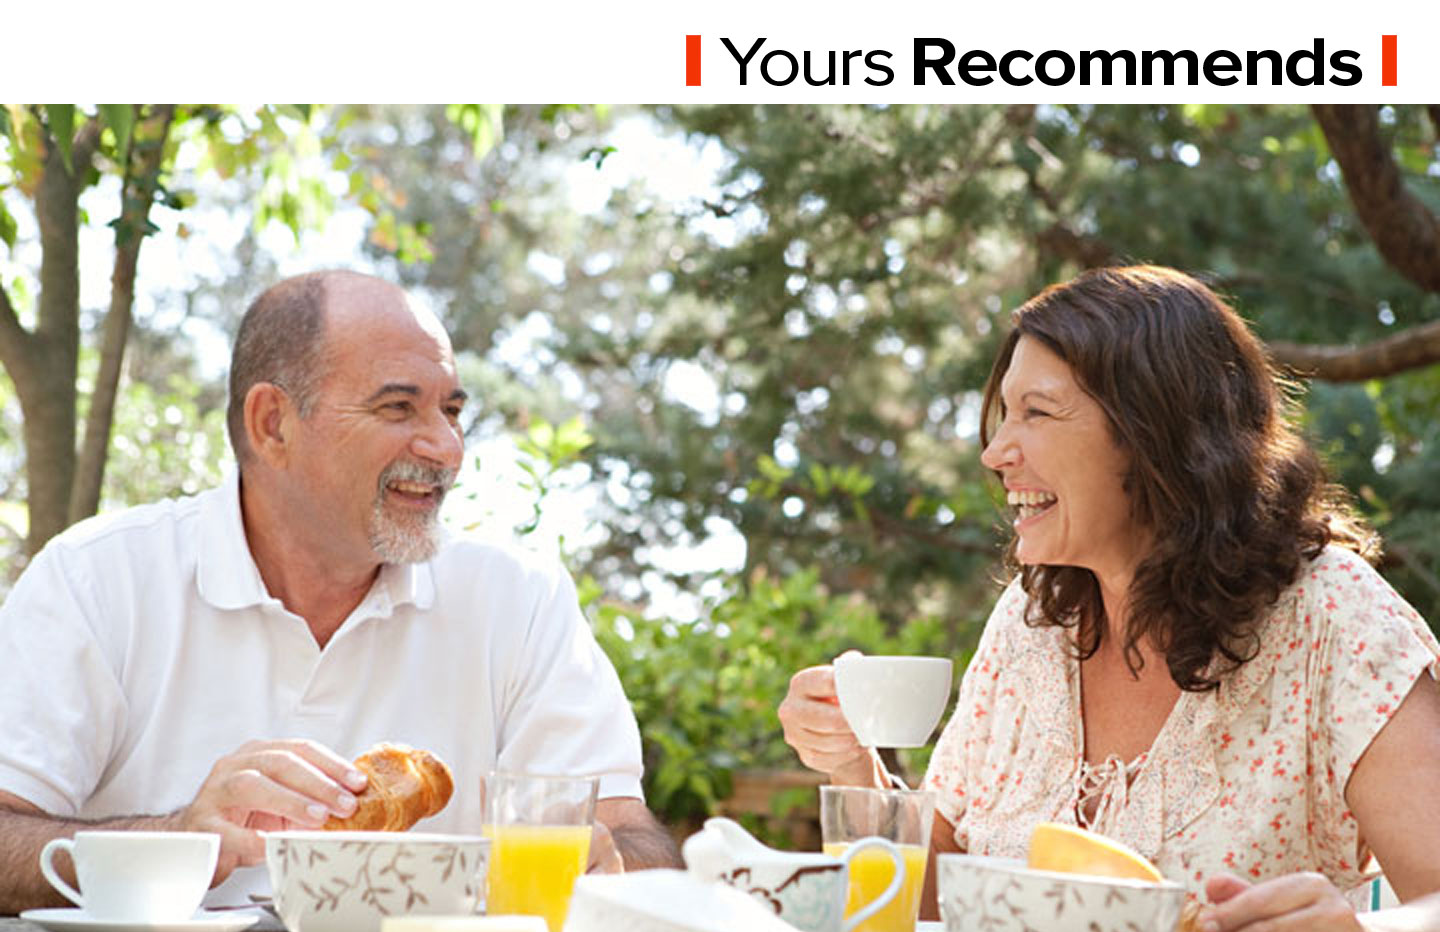 Best online dating sites for over 40s